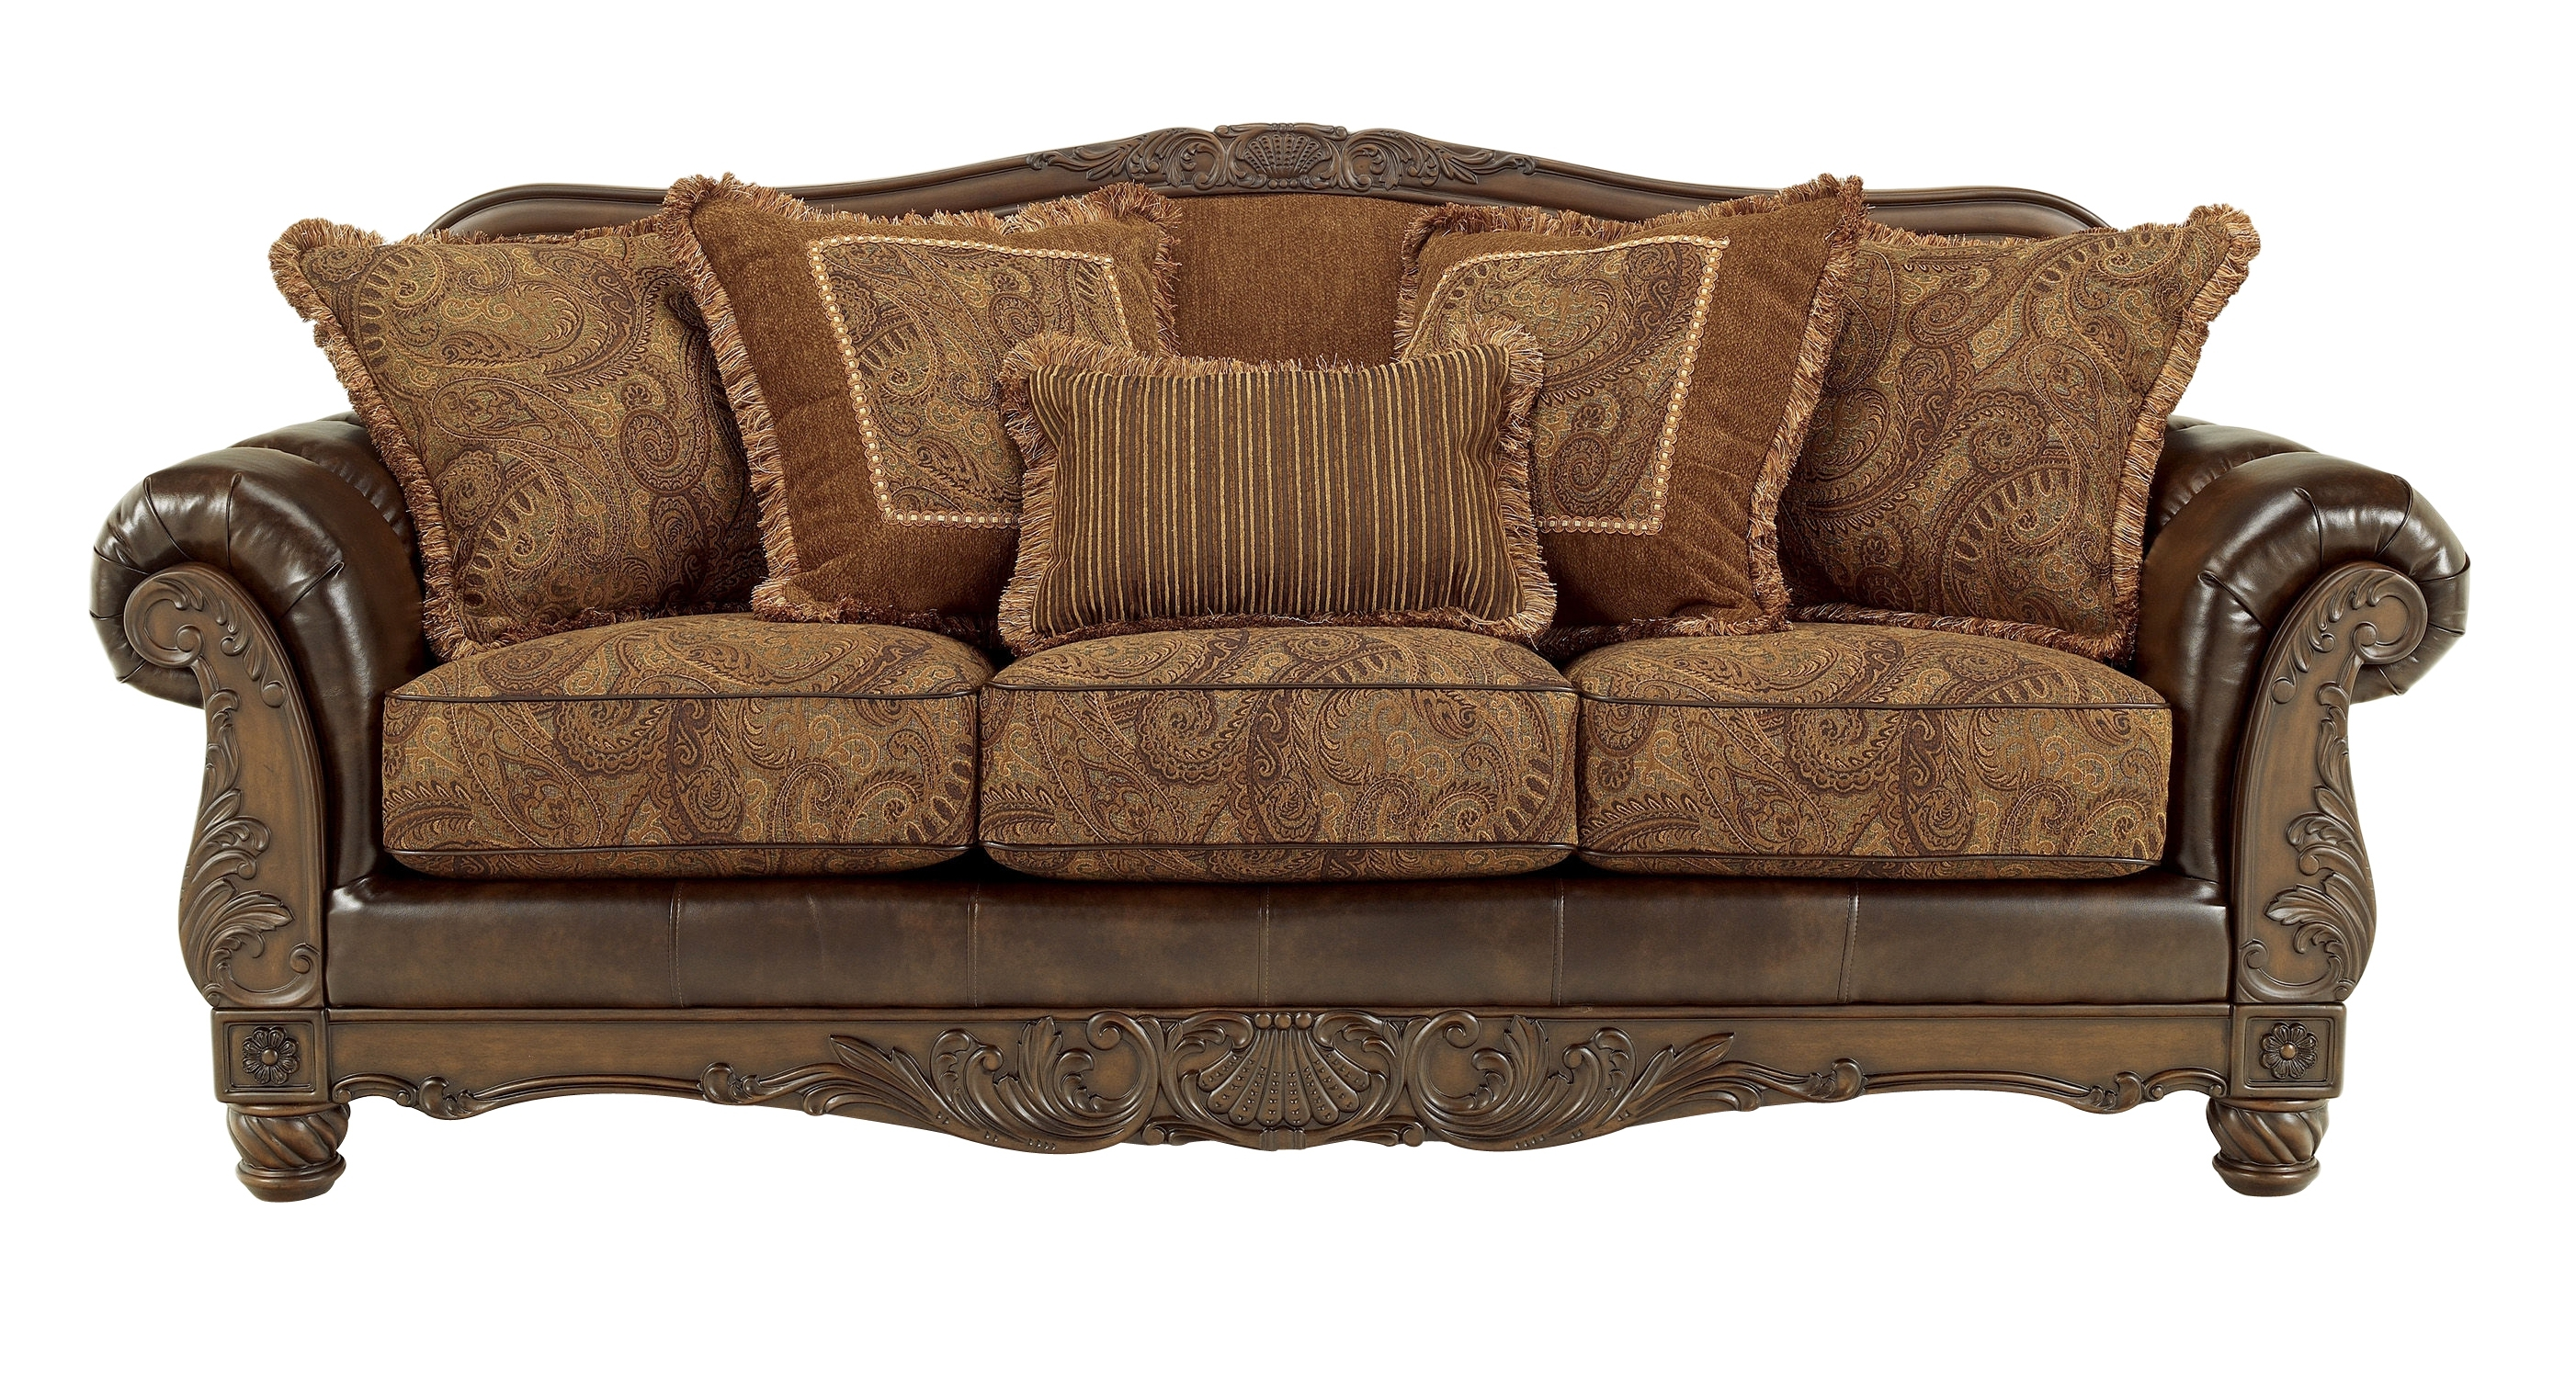 Fresco Durablend Traditional Antique Fabric Sofa Living Rooms With Regard To Antique Sofa Chairs (View 1 of 15)